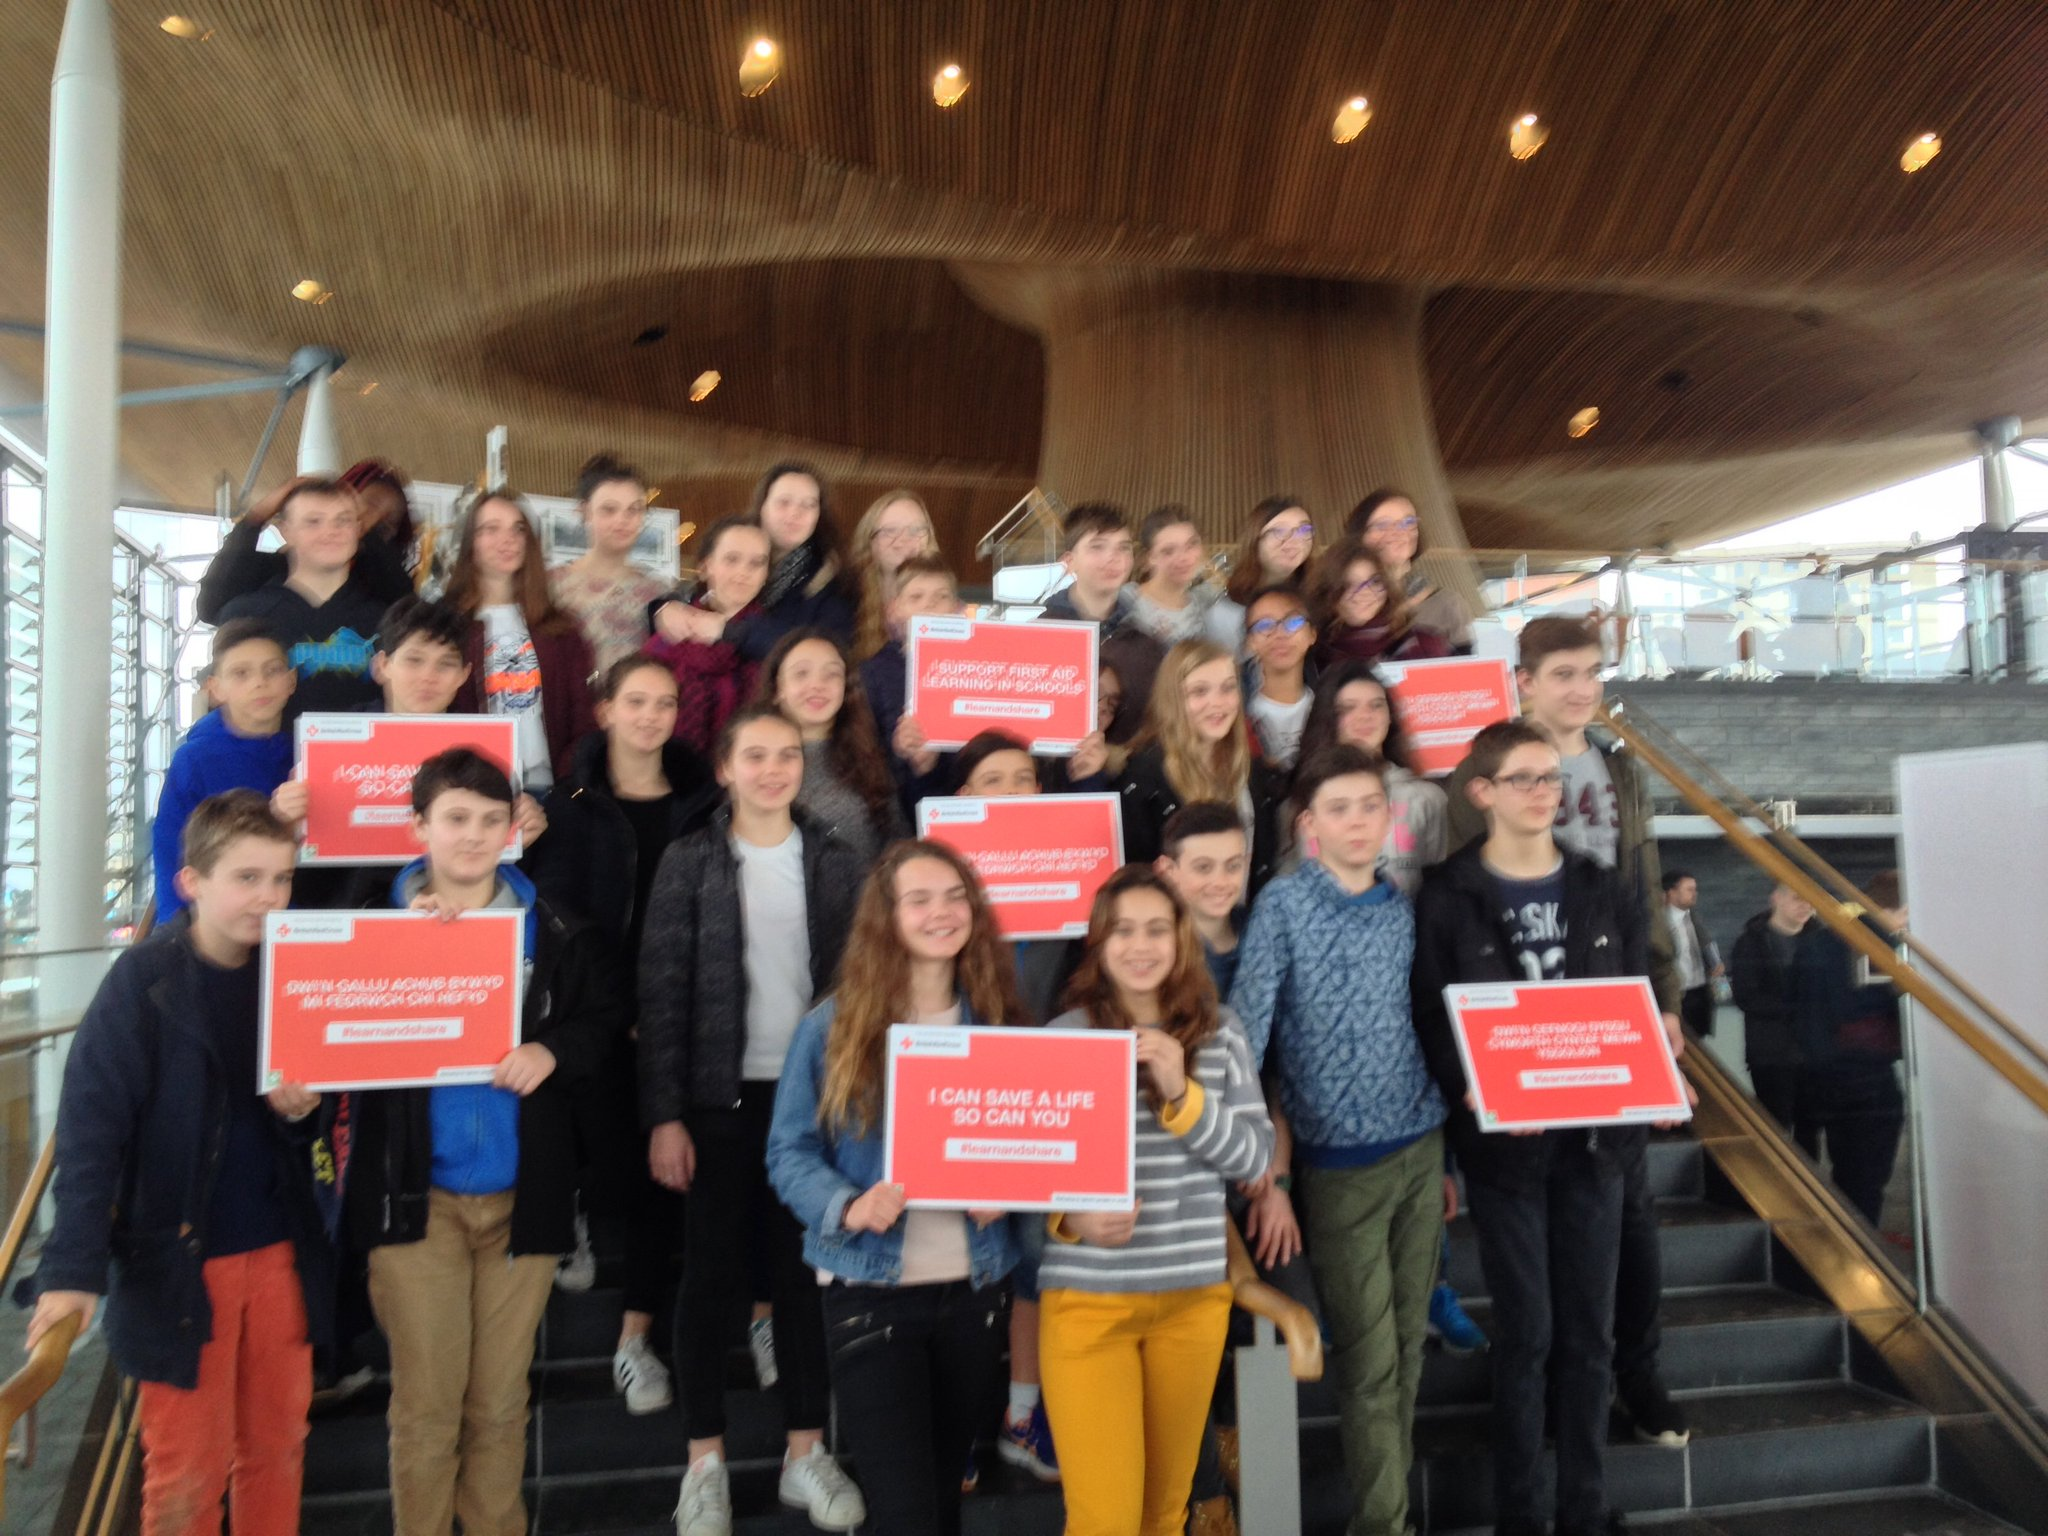 French school children from Orleans support the @BritishRedCross and @CardiffYC first aid event at the Senedd. #learnandshare https://t.co/8sfBs0HXRK